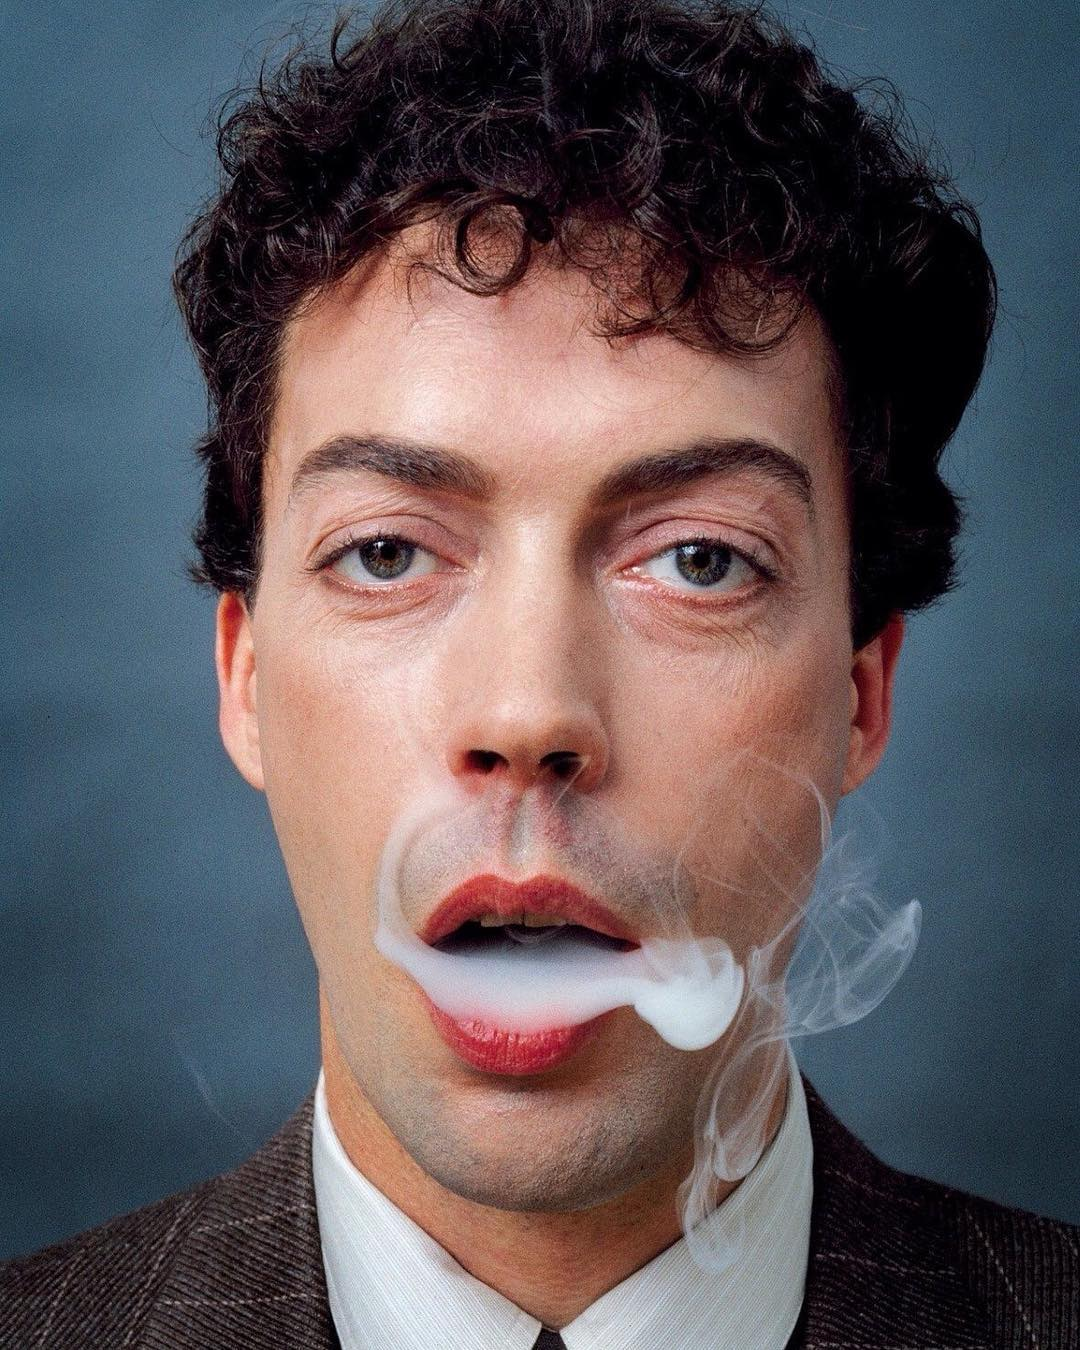 tim curry 5 40 Facts You Probably Didn't Know About Tim Curry